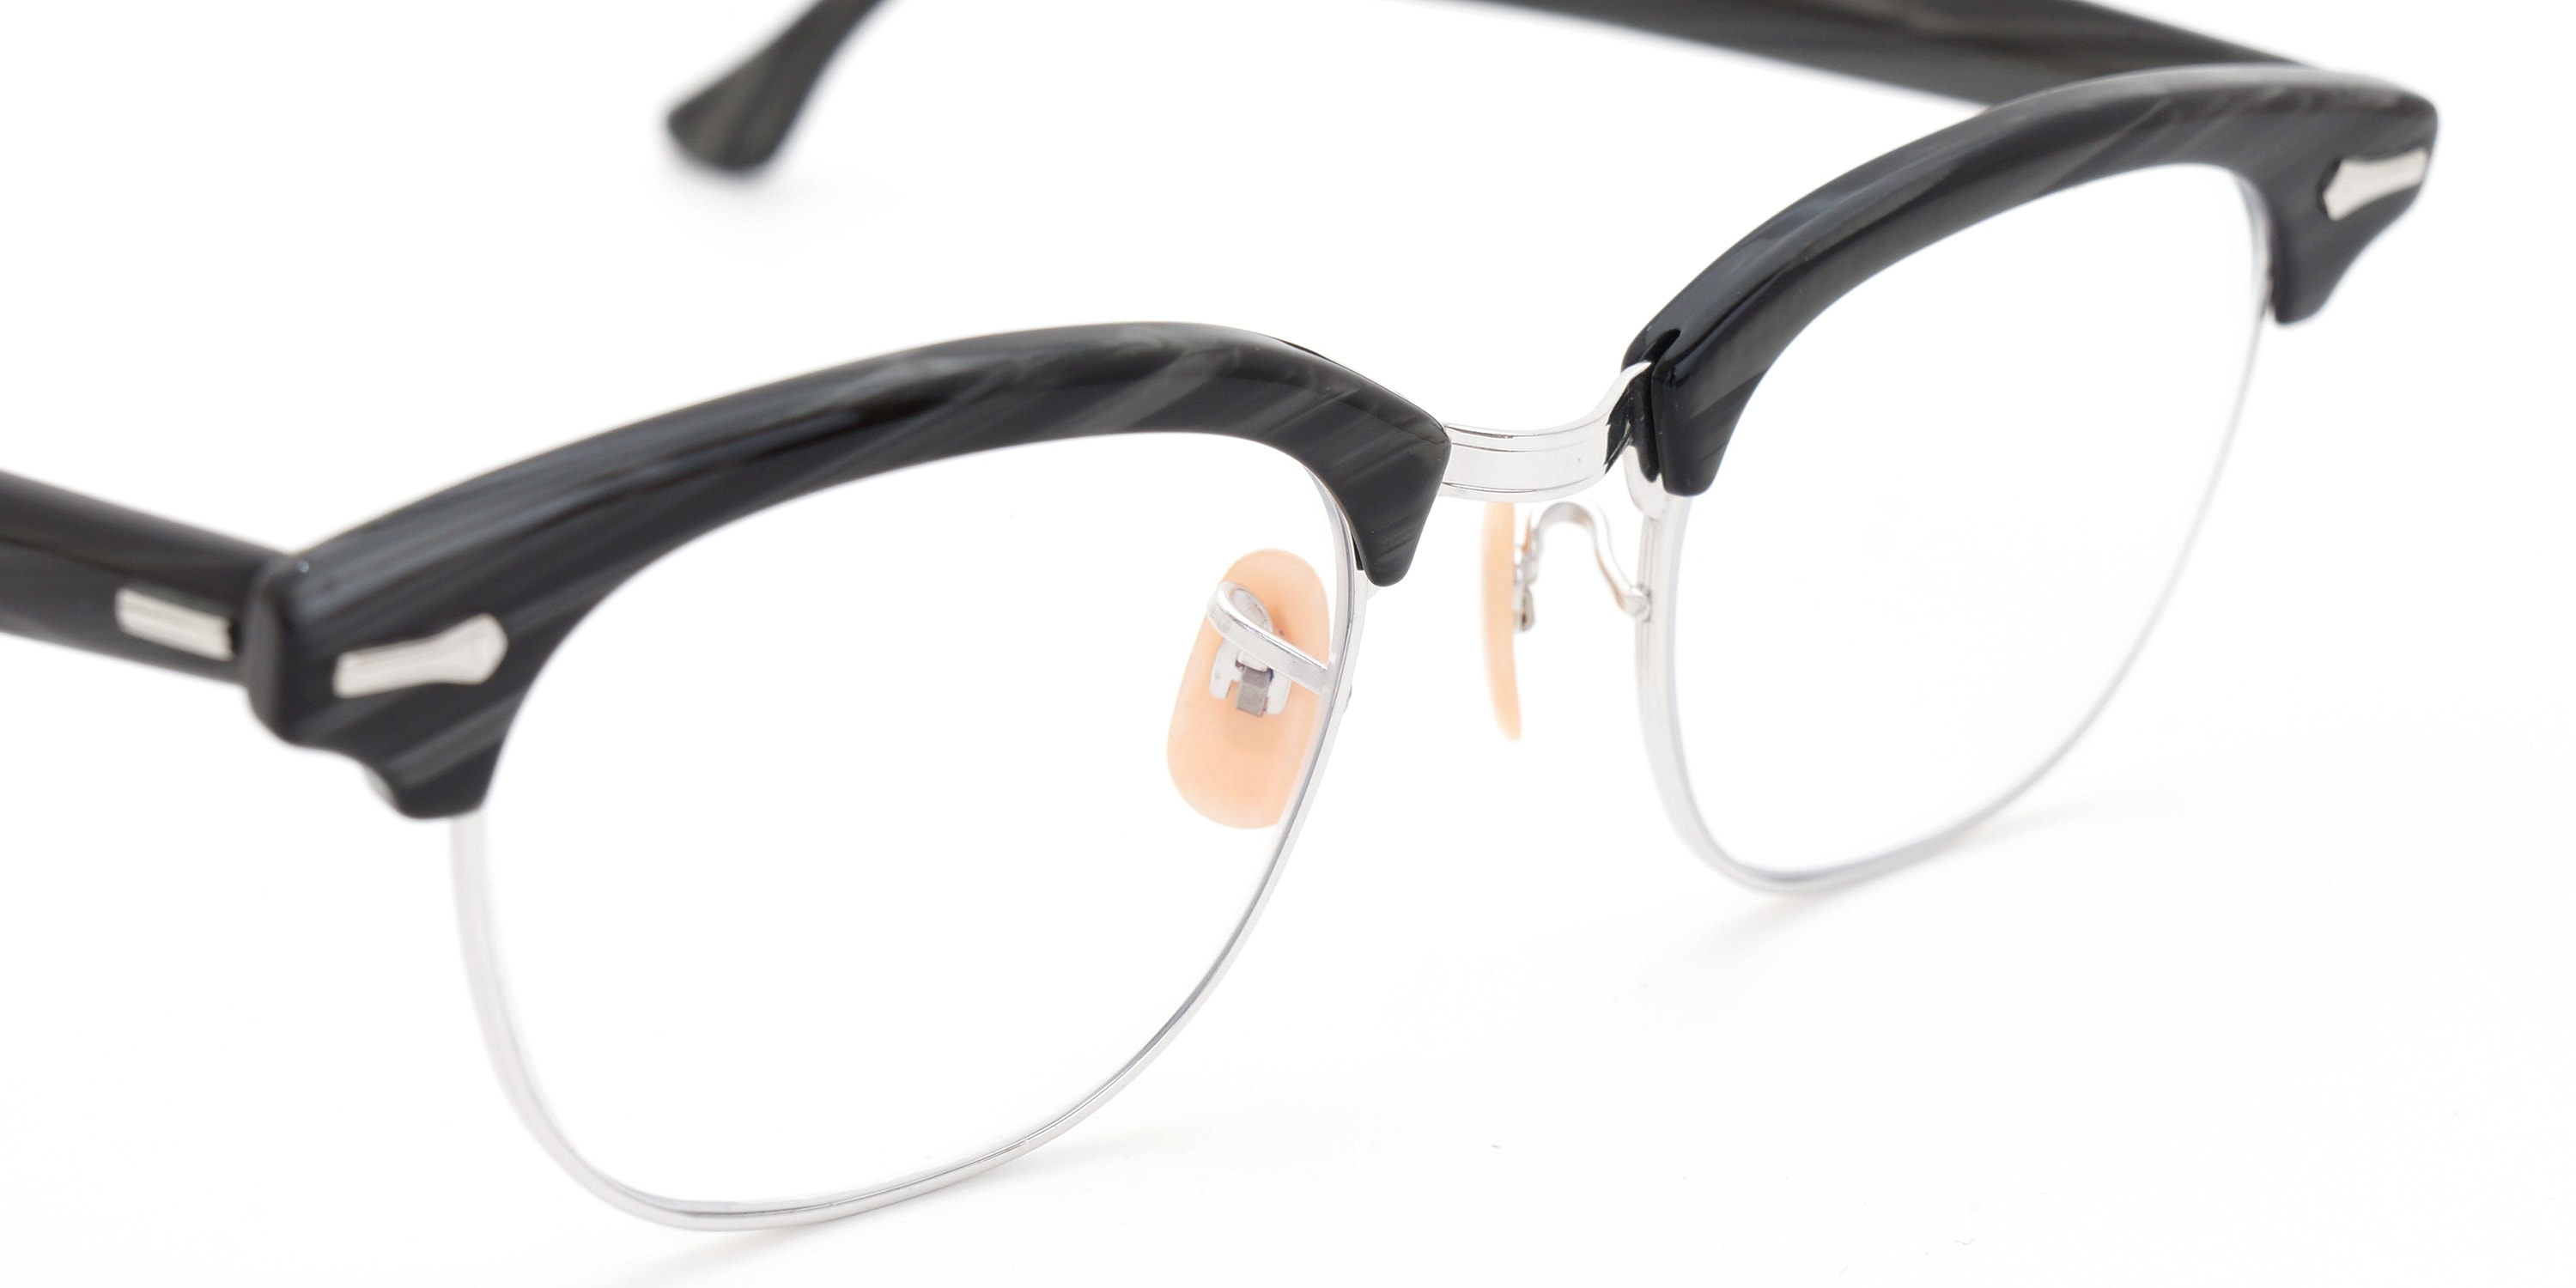 The Spectacle メガネ 1950s-1960s SHURON RONSIR Black-Stone WG 1/10 12KGF 46/20 イメージ8